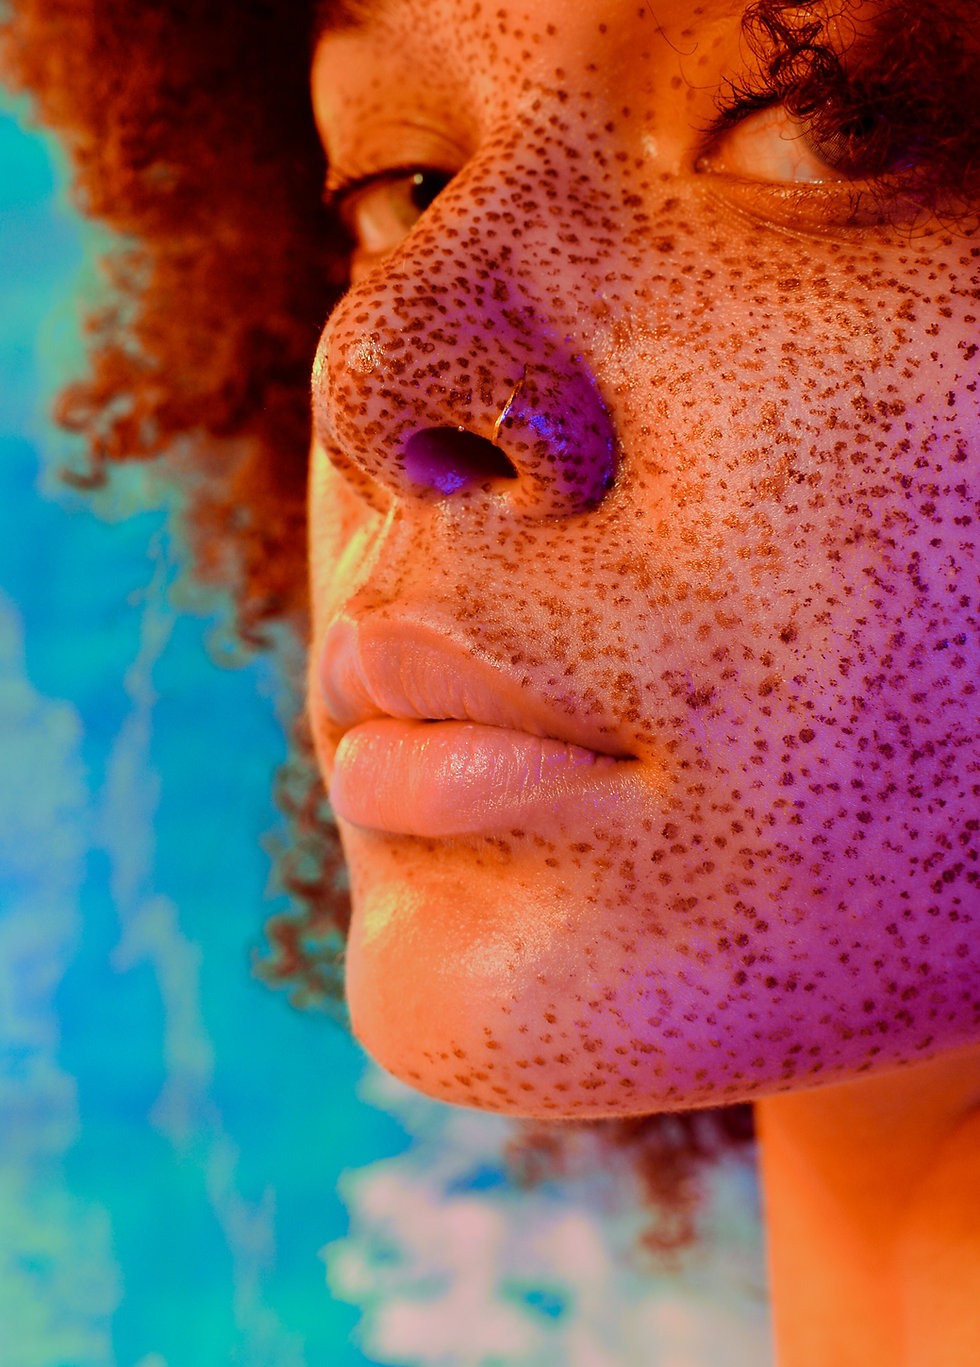 Portrait of a freckled woman